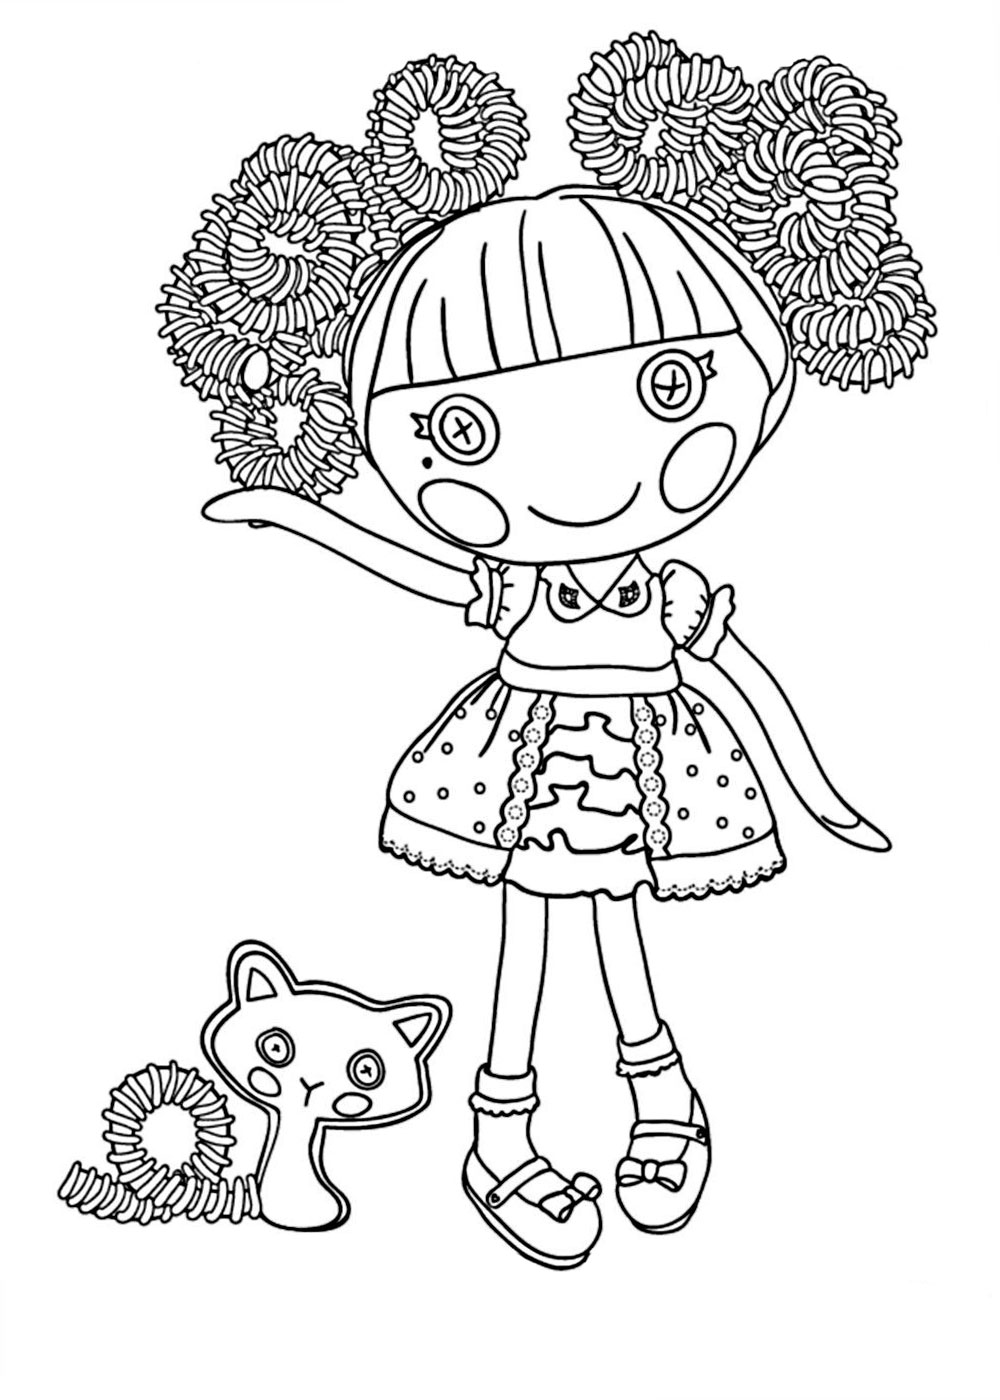 Adult Beauty Coloring Pages Lalaloopsy Gallery Images top lalaloopsy coloring pages for girls to print free gallery images